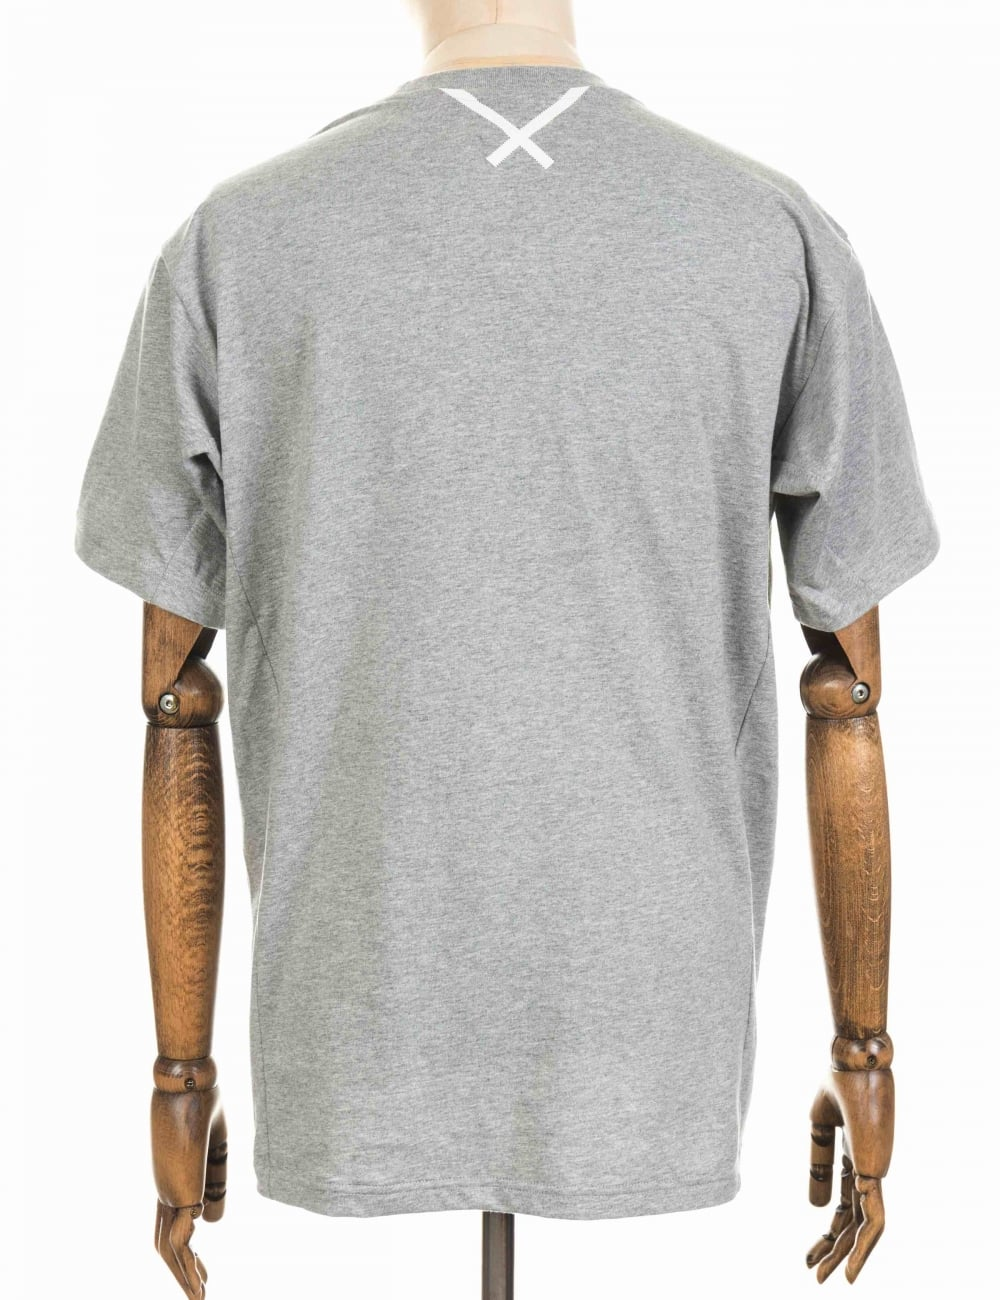 7246d0e5 Adidas Originals X by O Tee - Heather Grey - Clothing from Fat ...